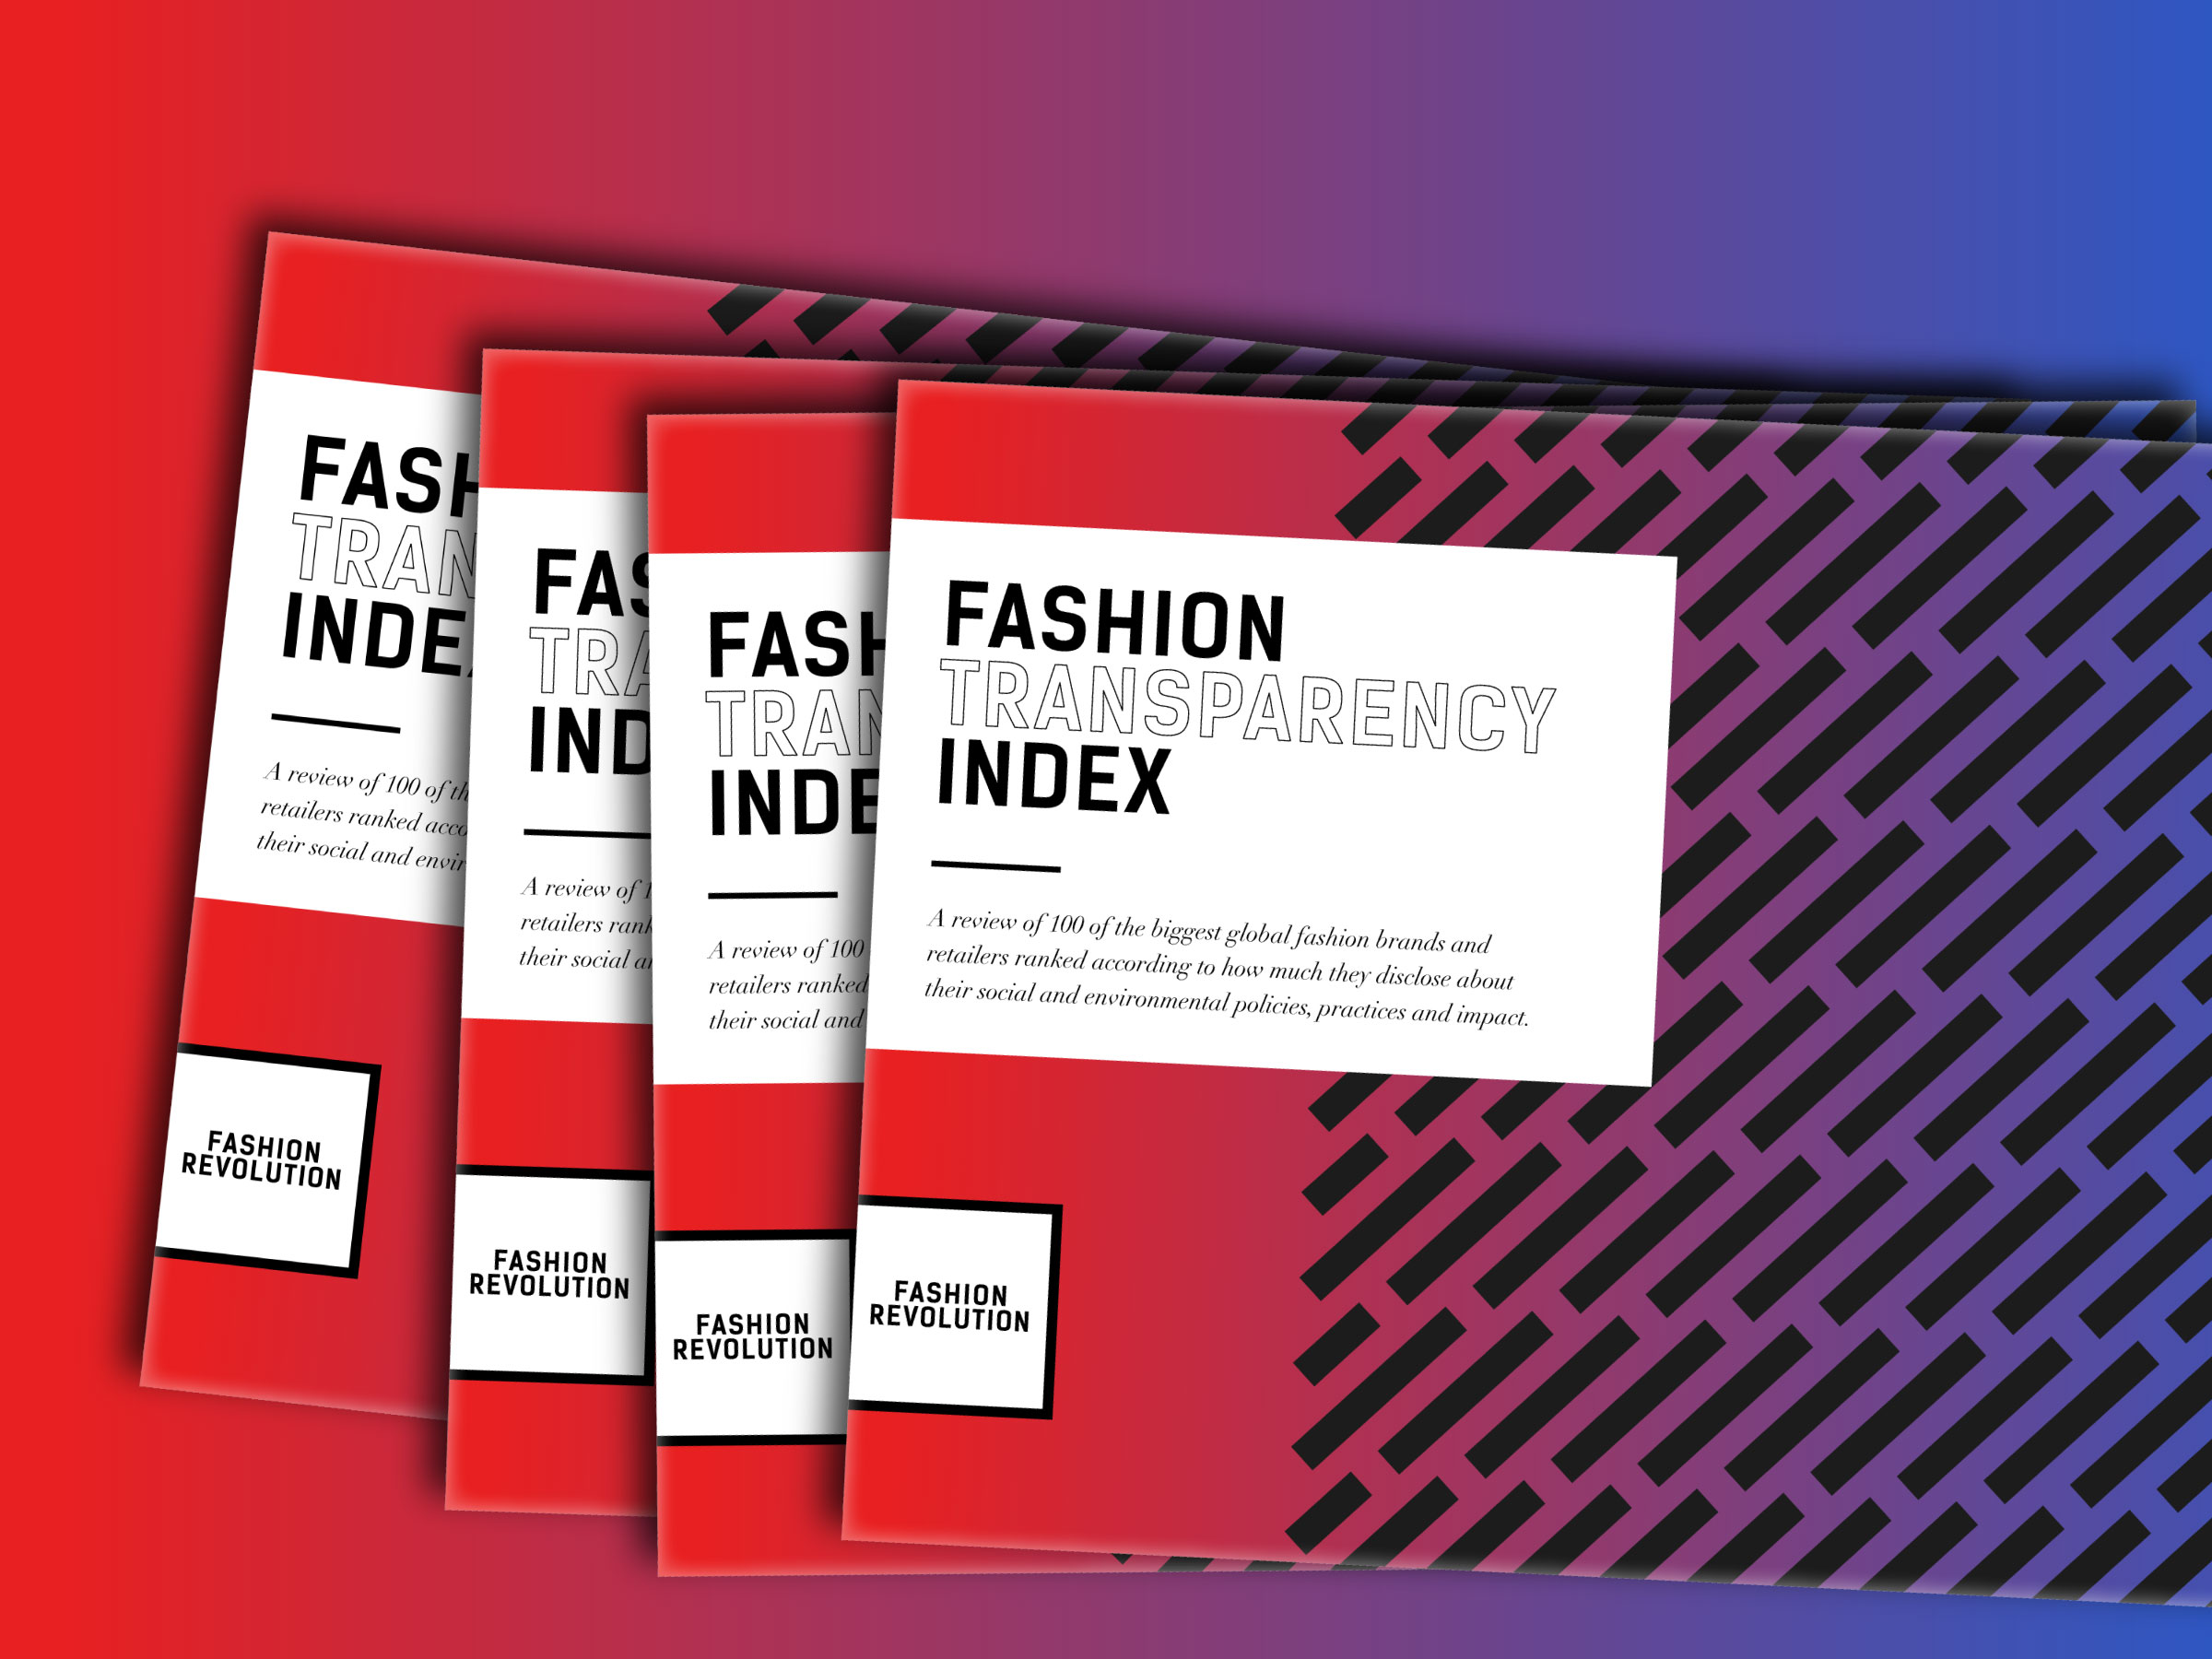 The Fashion Transparency Index 2017